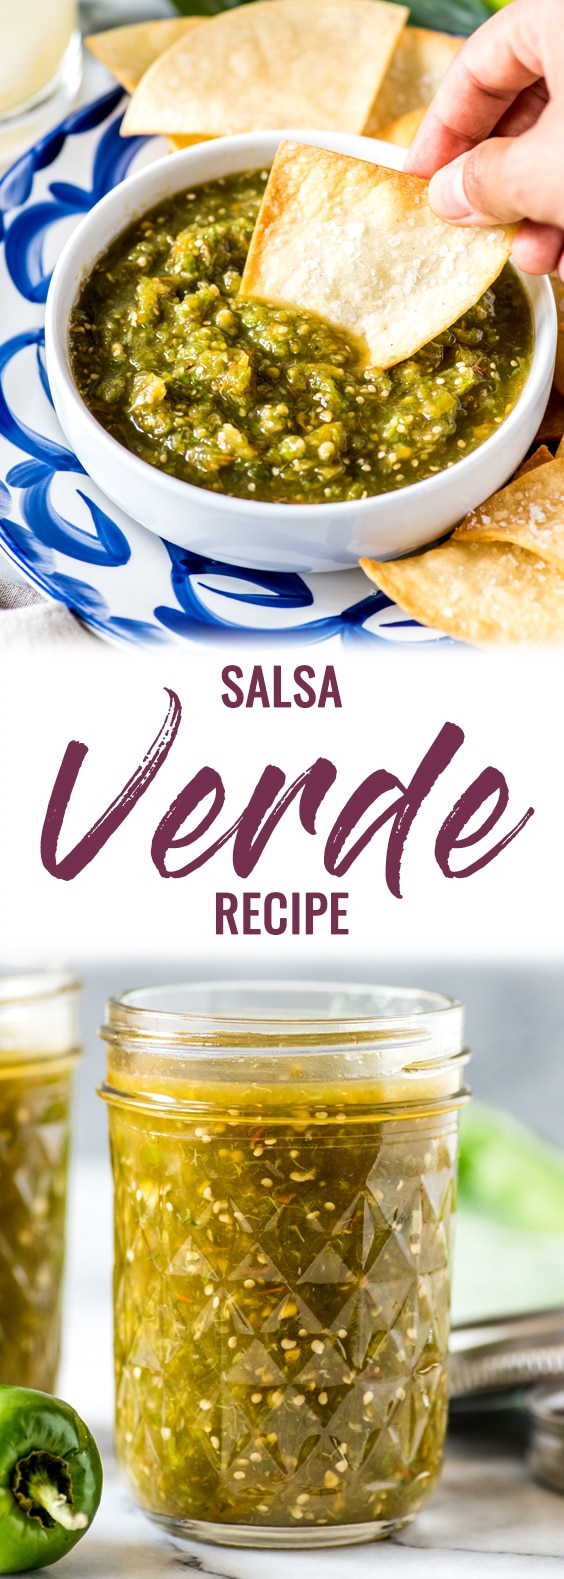 This Easy Salsa Verde Recipe made with tomatillos and jalapenos can be used in dozens of Mexican dishes. It's gluten-free, dairy-free, vegetarian and vegan. #salsa #salsaverde #tomatillosalsa #mexican